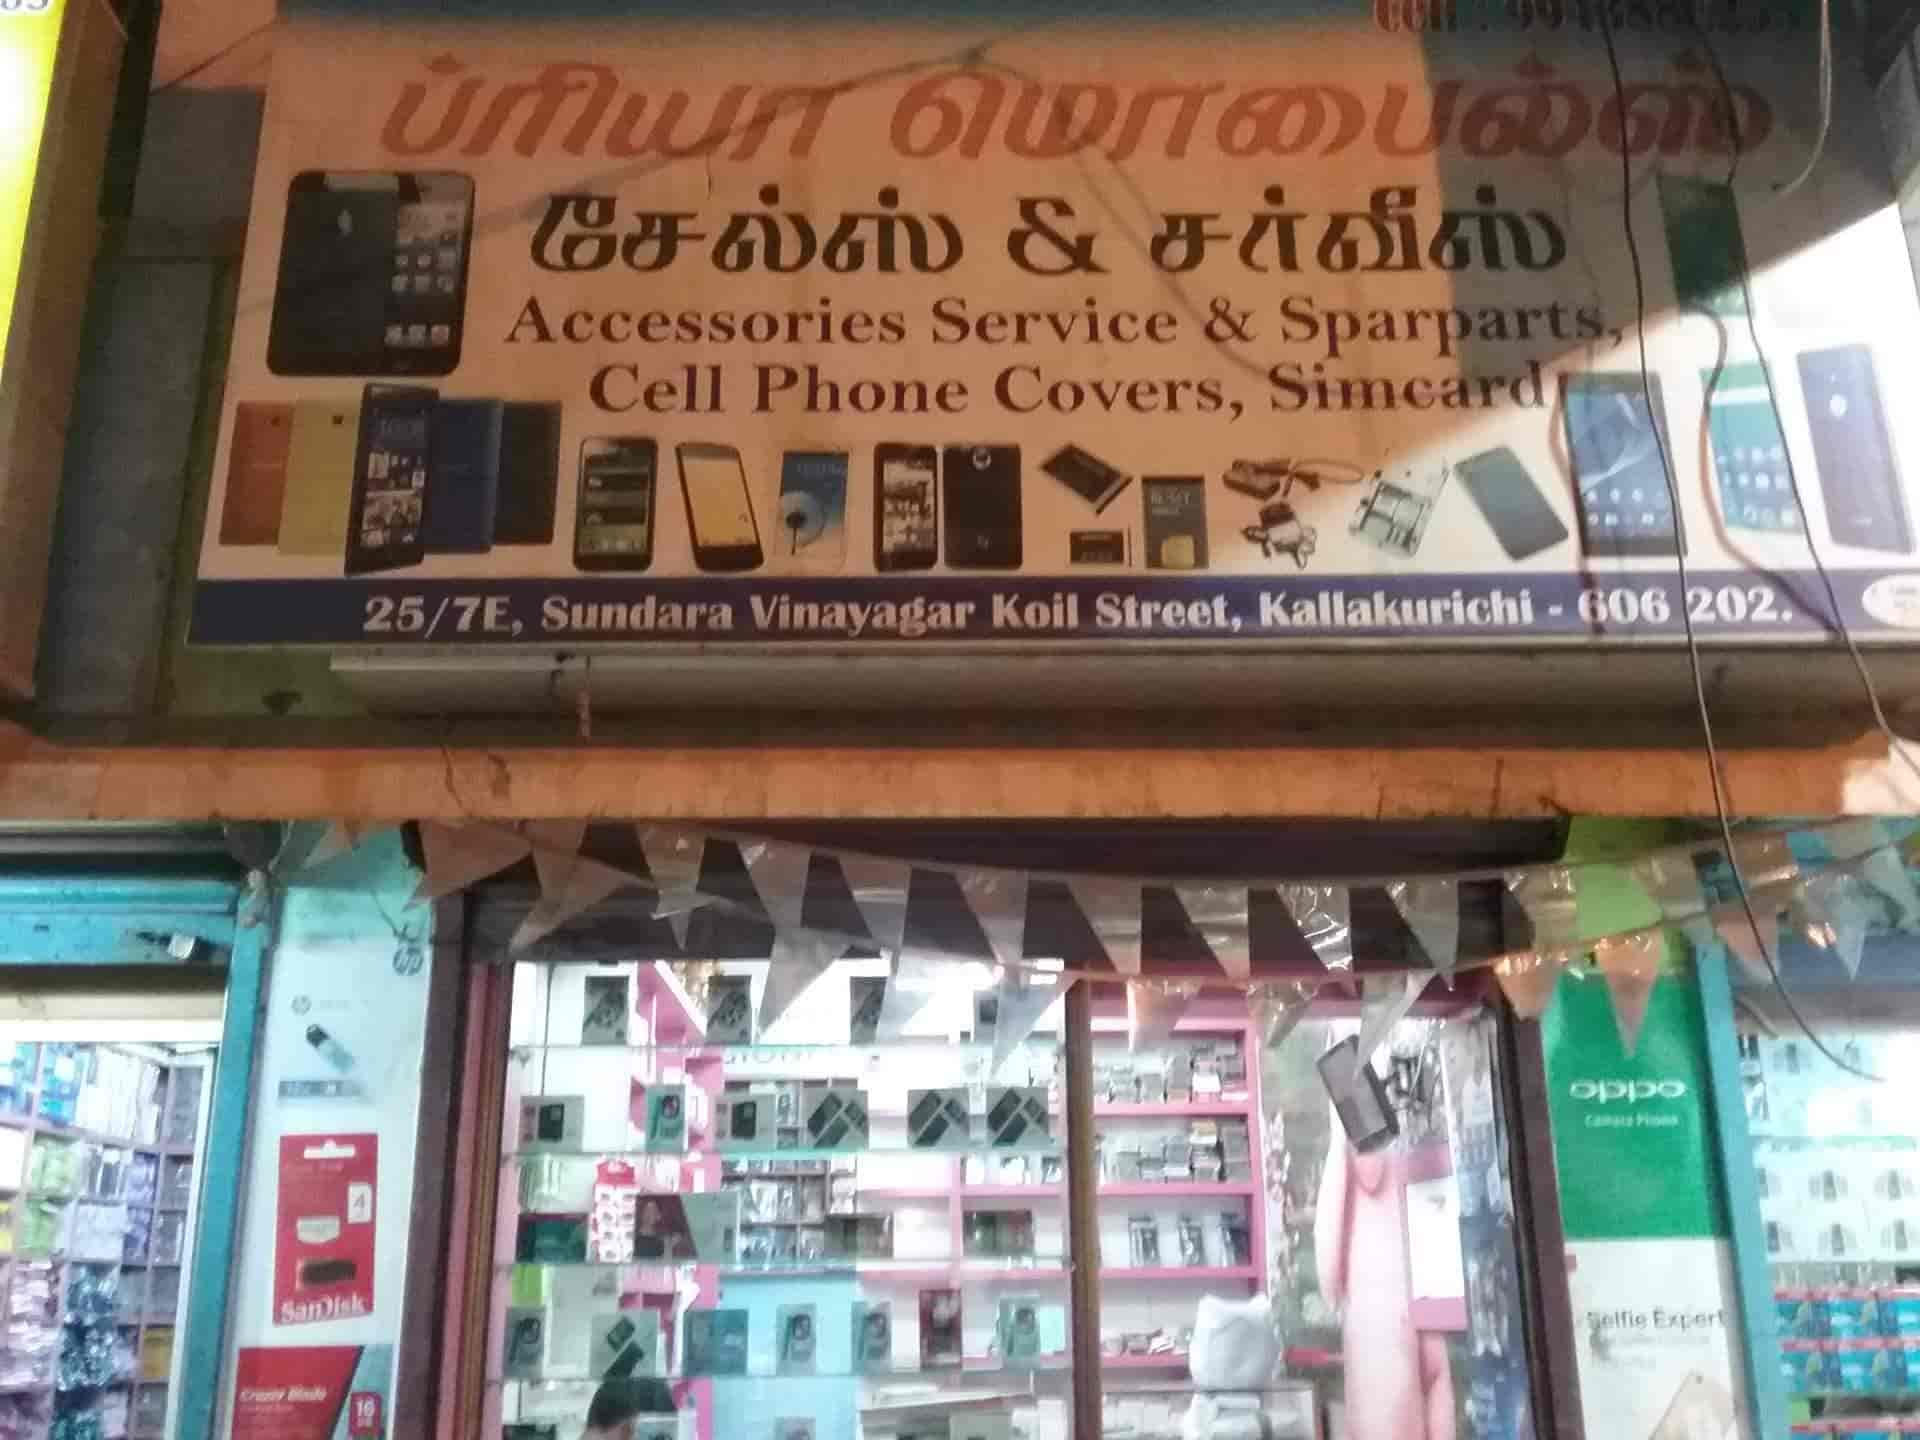 Priya Mobiles, Near Mahalakshmi Cinema - Mobile Phone Dealers in